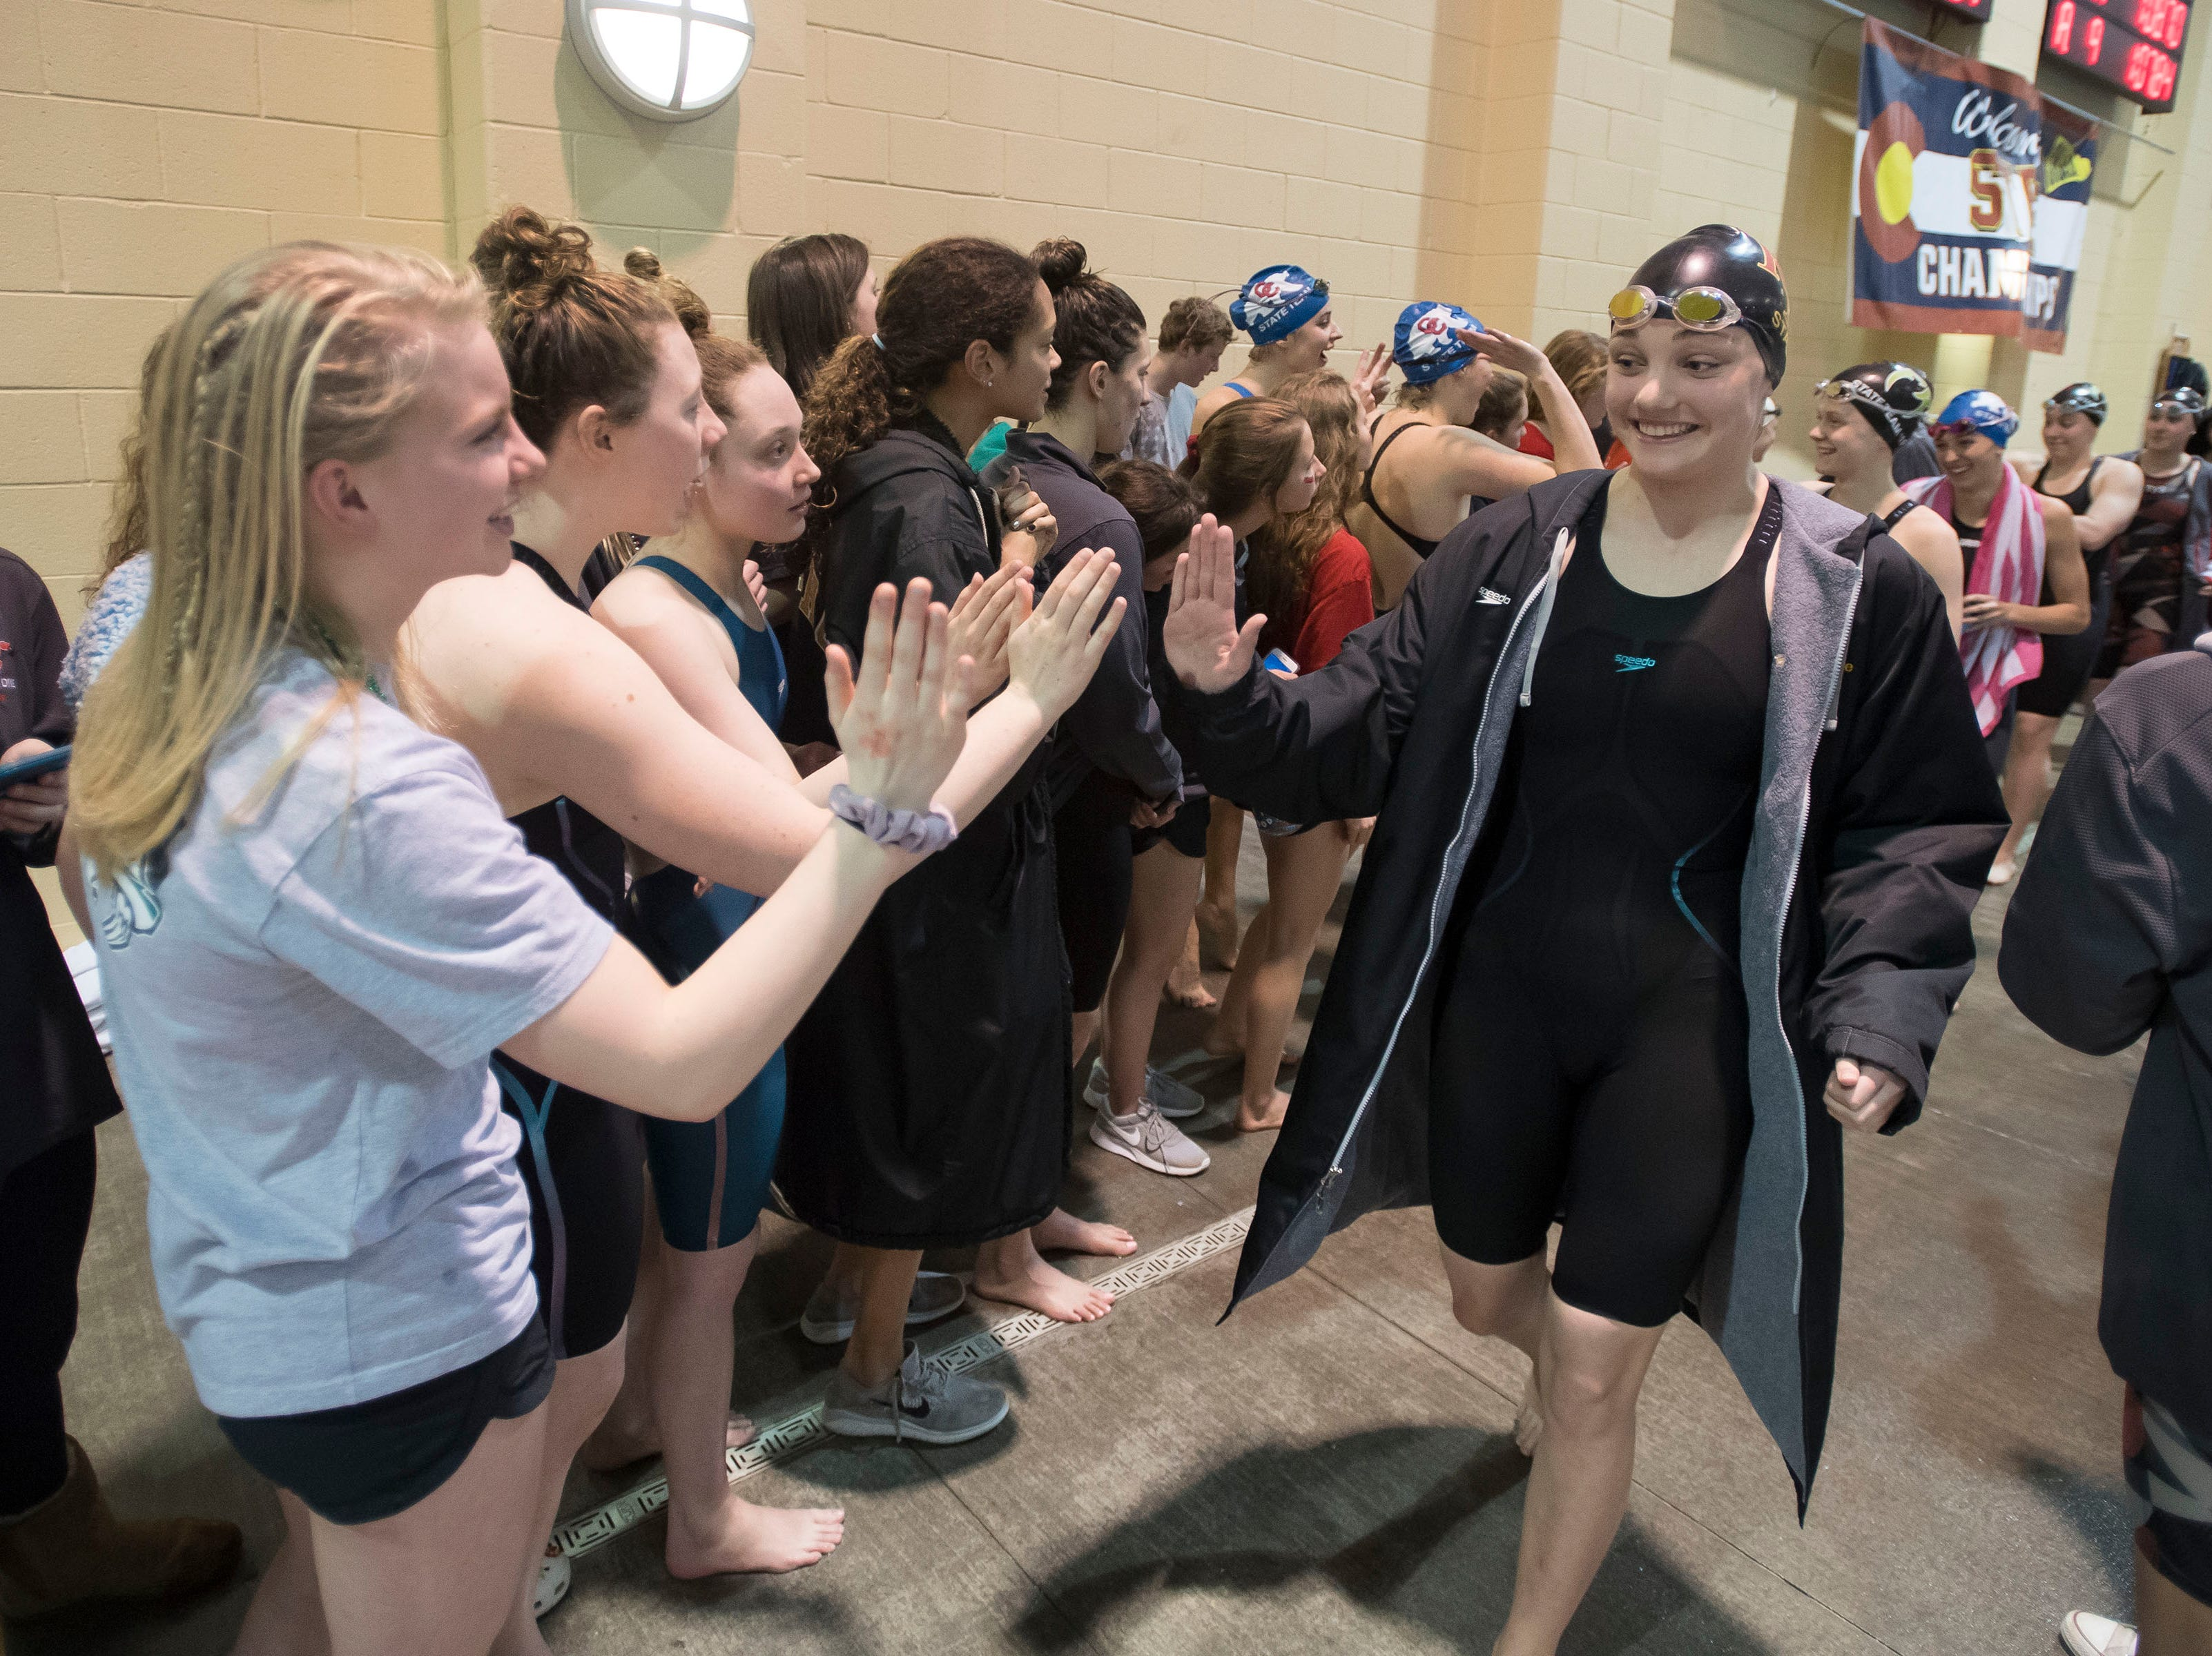 Rocky Mountain High School sophomore Meredith Smithbaker gets high-fives on her way to the starting blocks on Saturday, Feb. 9, 2019, at Veterans Memorial Aquatic Center in Thornton, Colo.